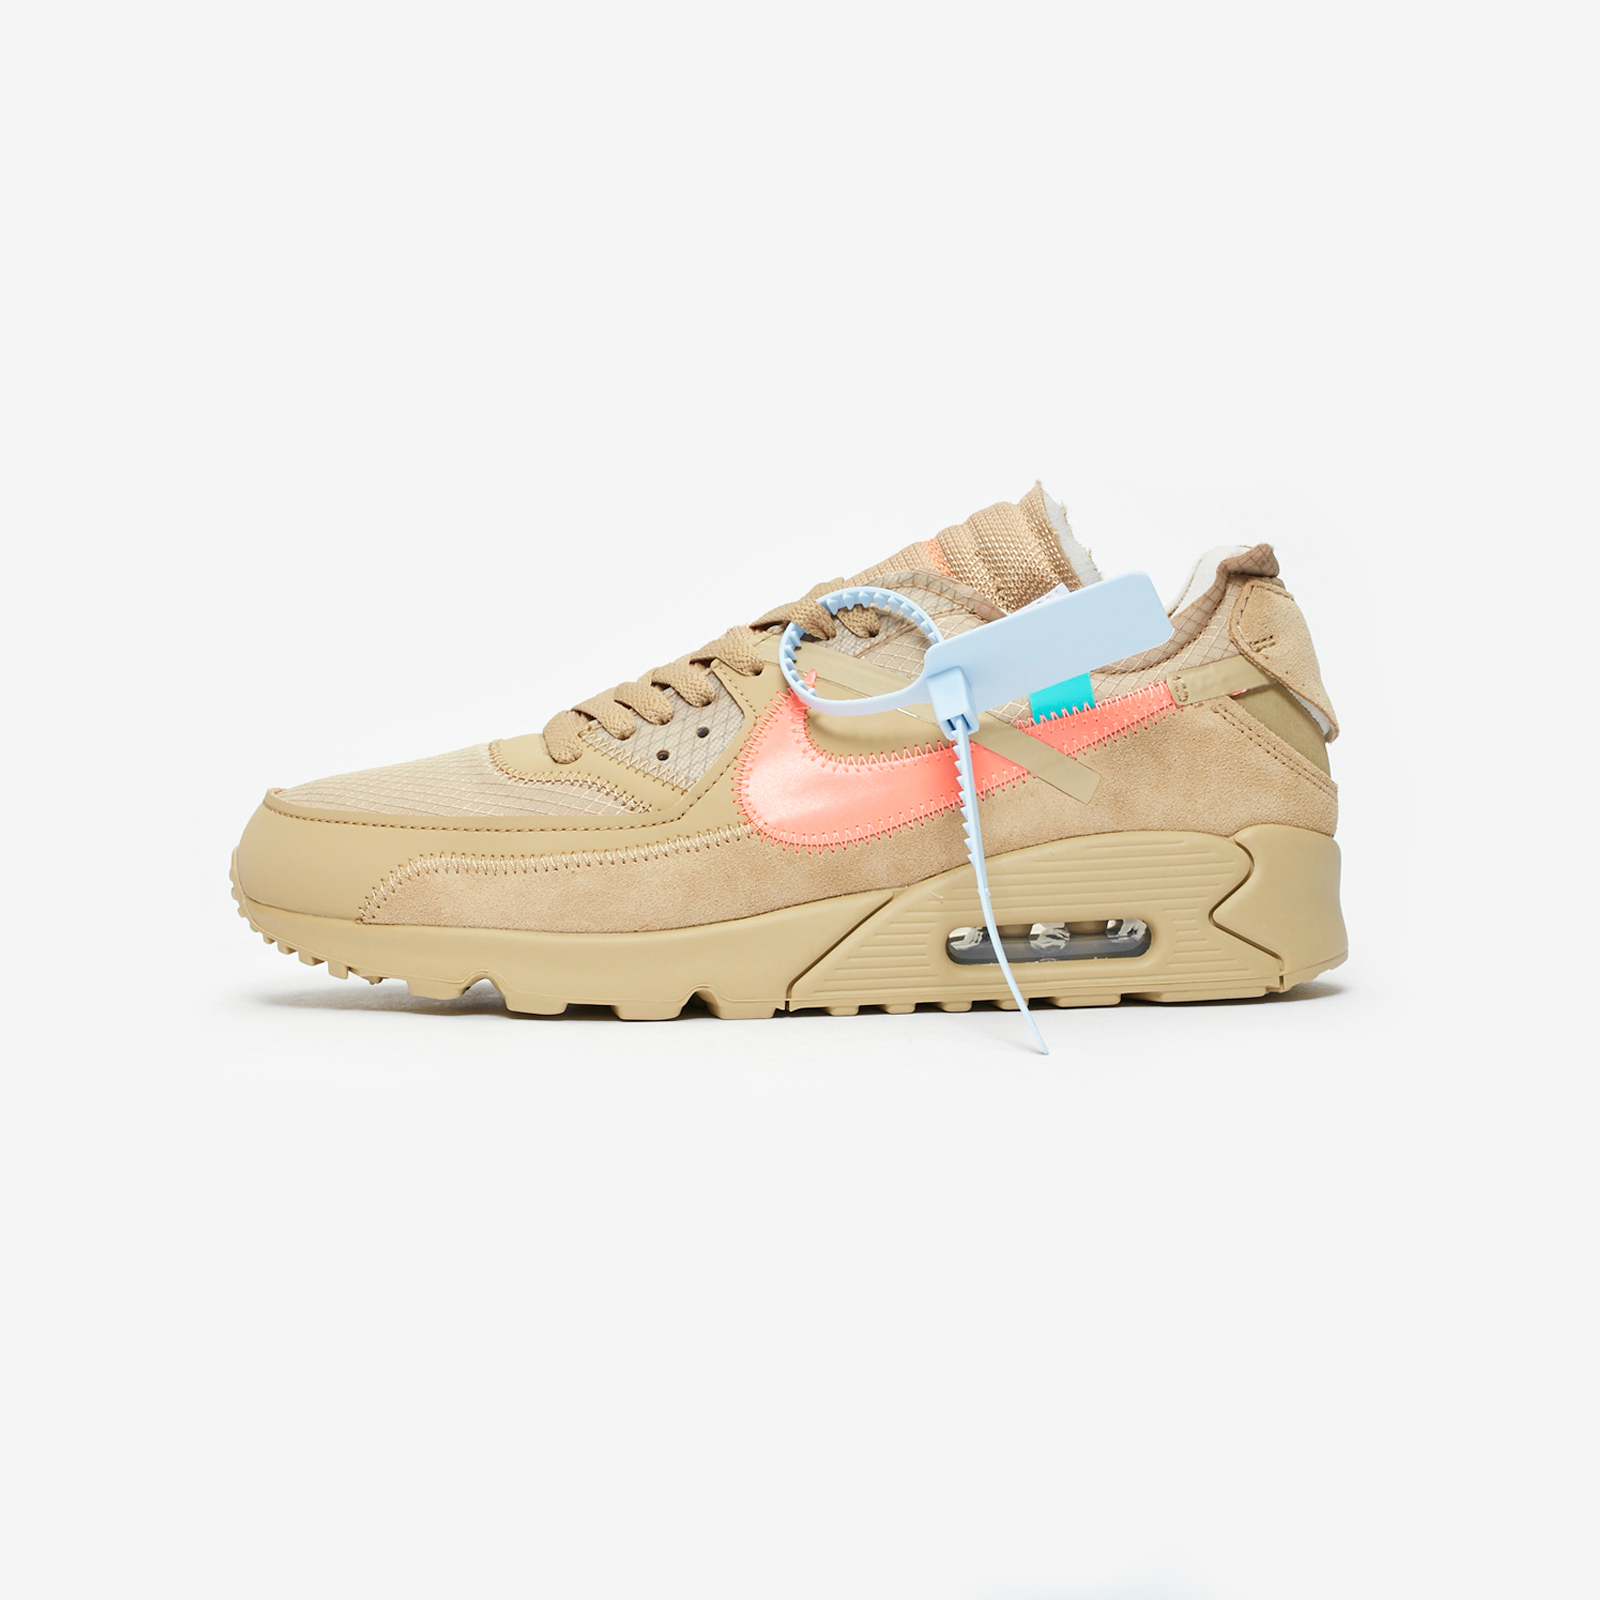 the latest 367d3 6bd28 Nike The 10  Air Max 90 - Aa7293-200 - Sneakersnstuff   sneakers   streetwear  online since 1999